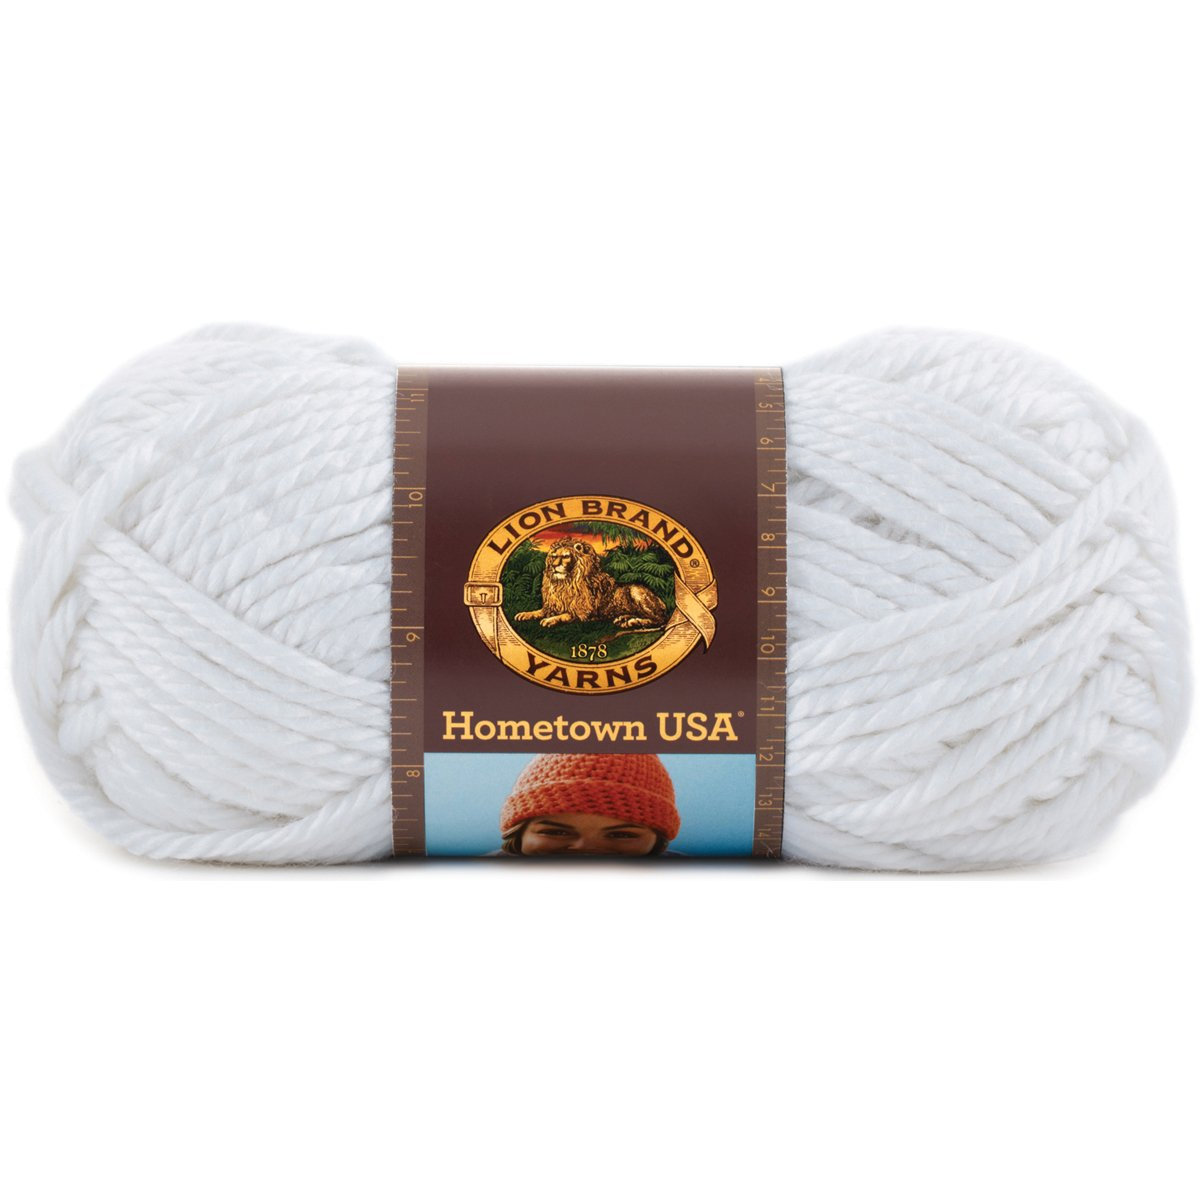 Lion Brand Yarn 135-153I Hometown USA Yarn, Oakland Black Darice